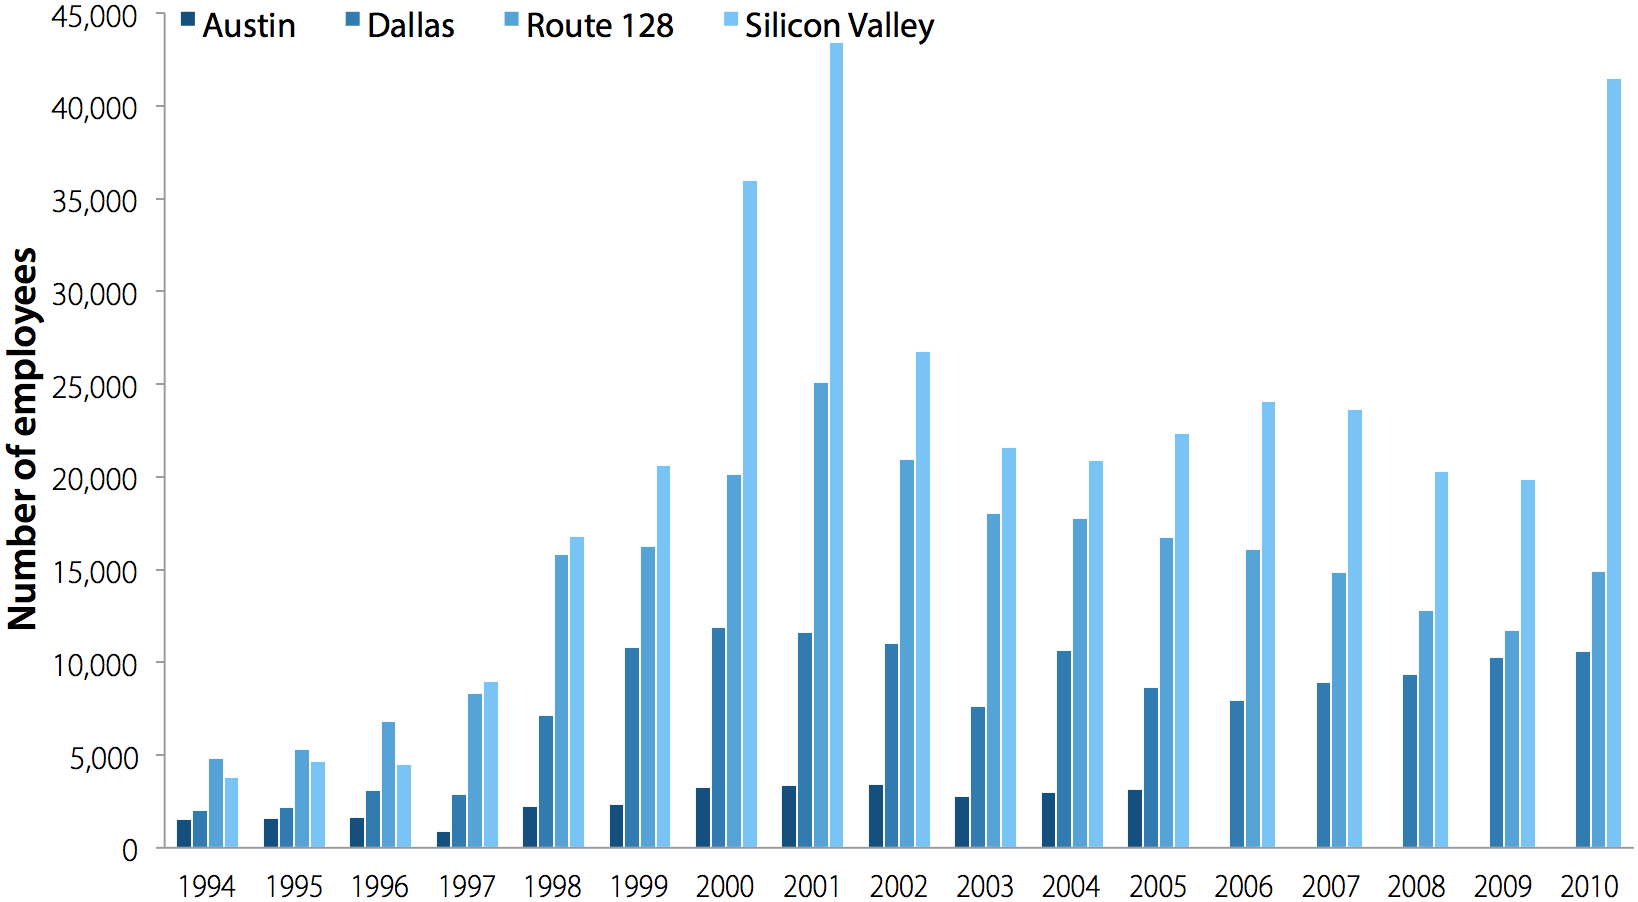 Full-time computer system design employment in Austin, Dallas, Route 128 corridor, and Silicon Valley, 1994–2010